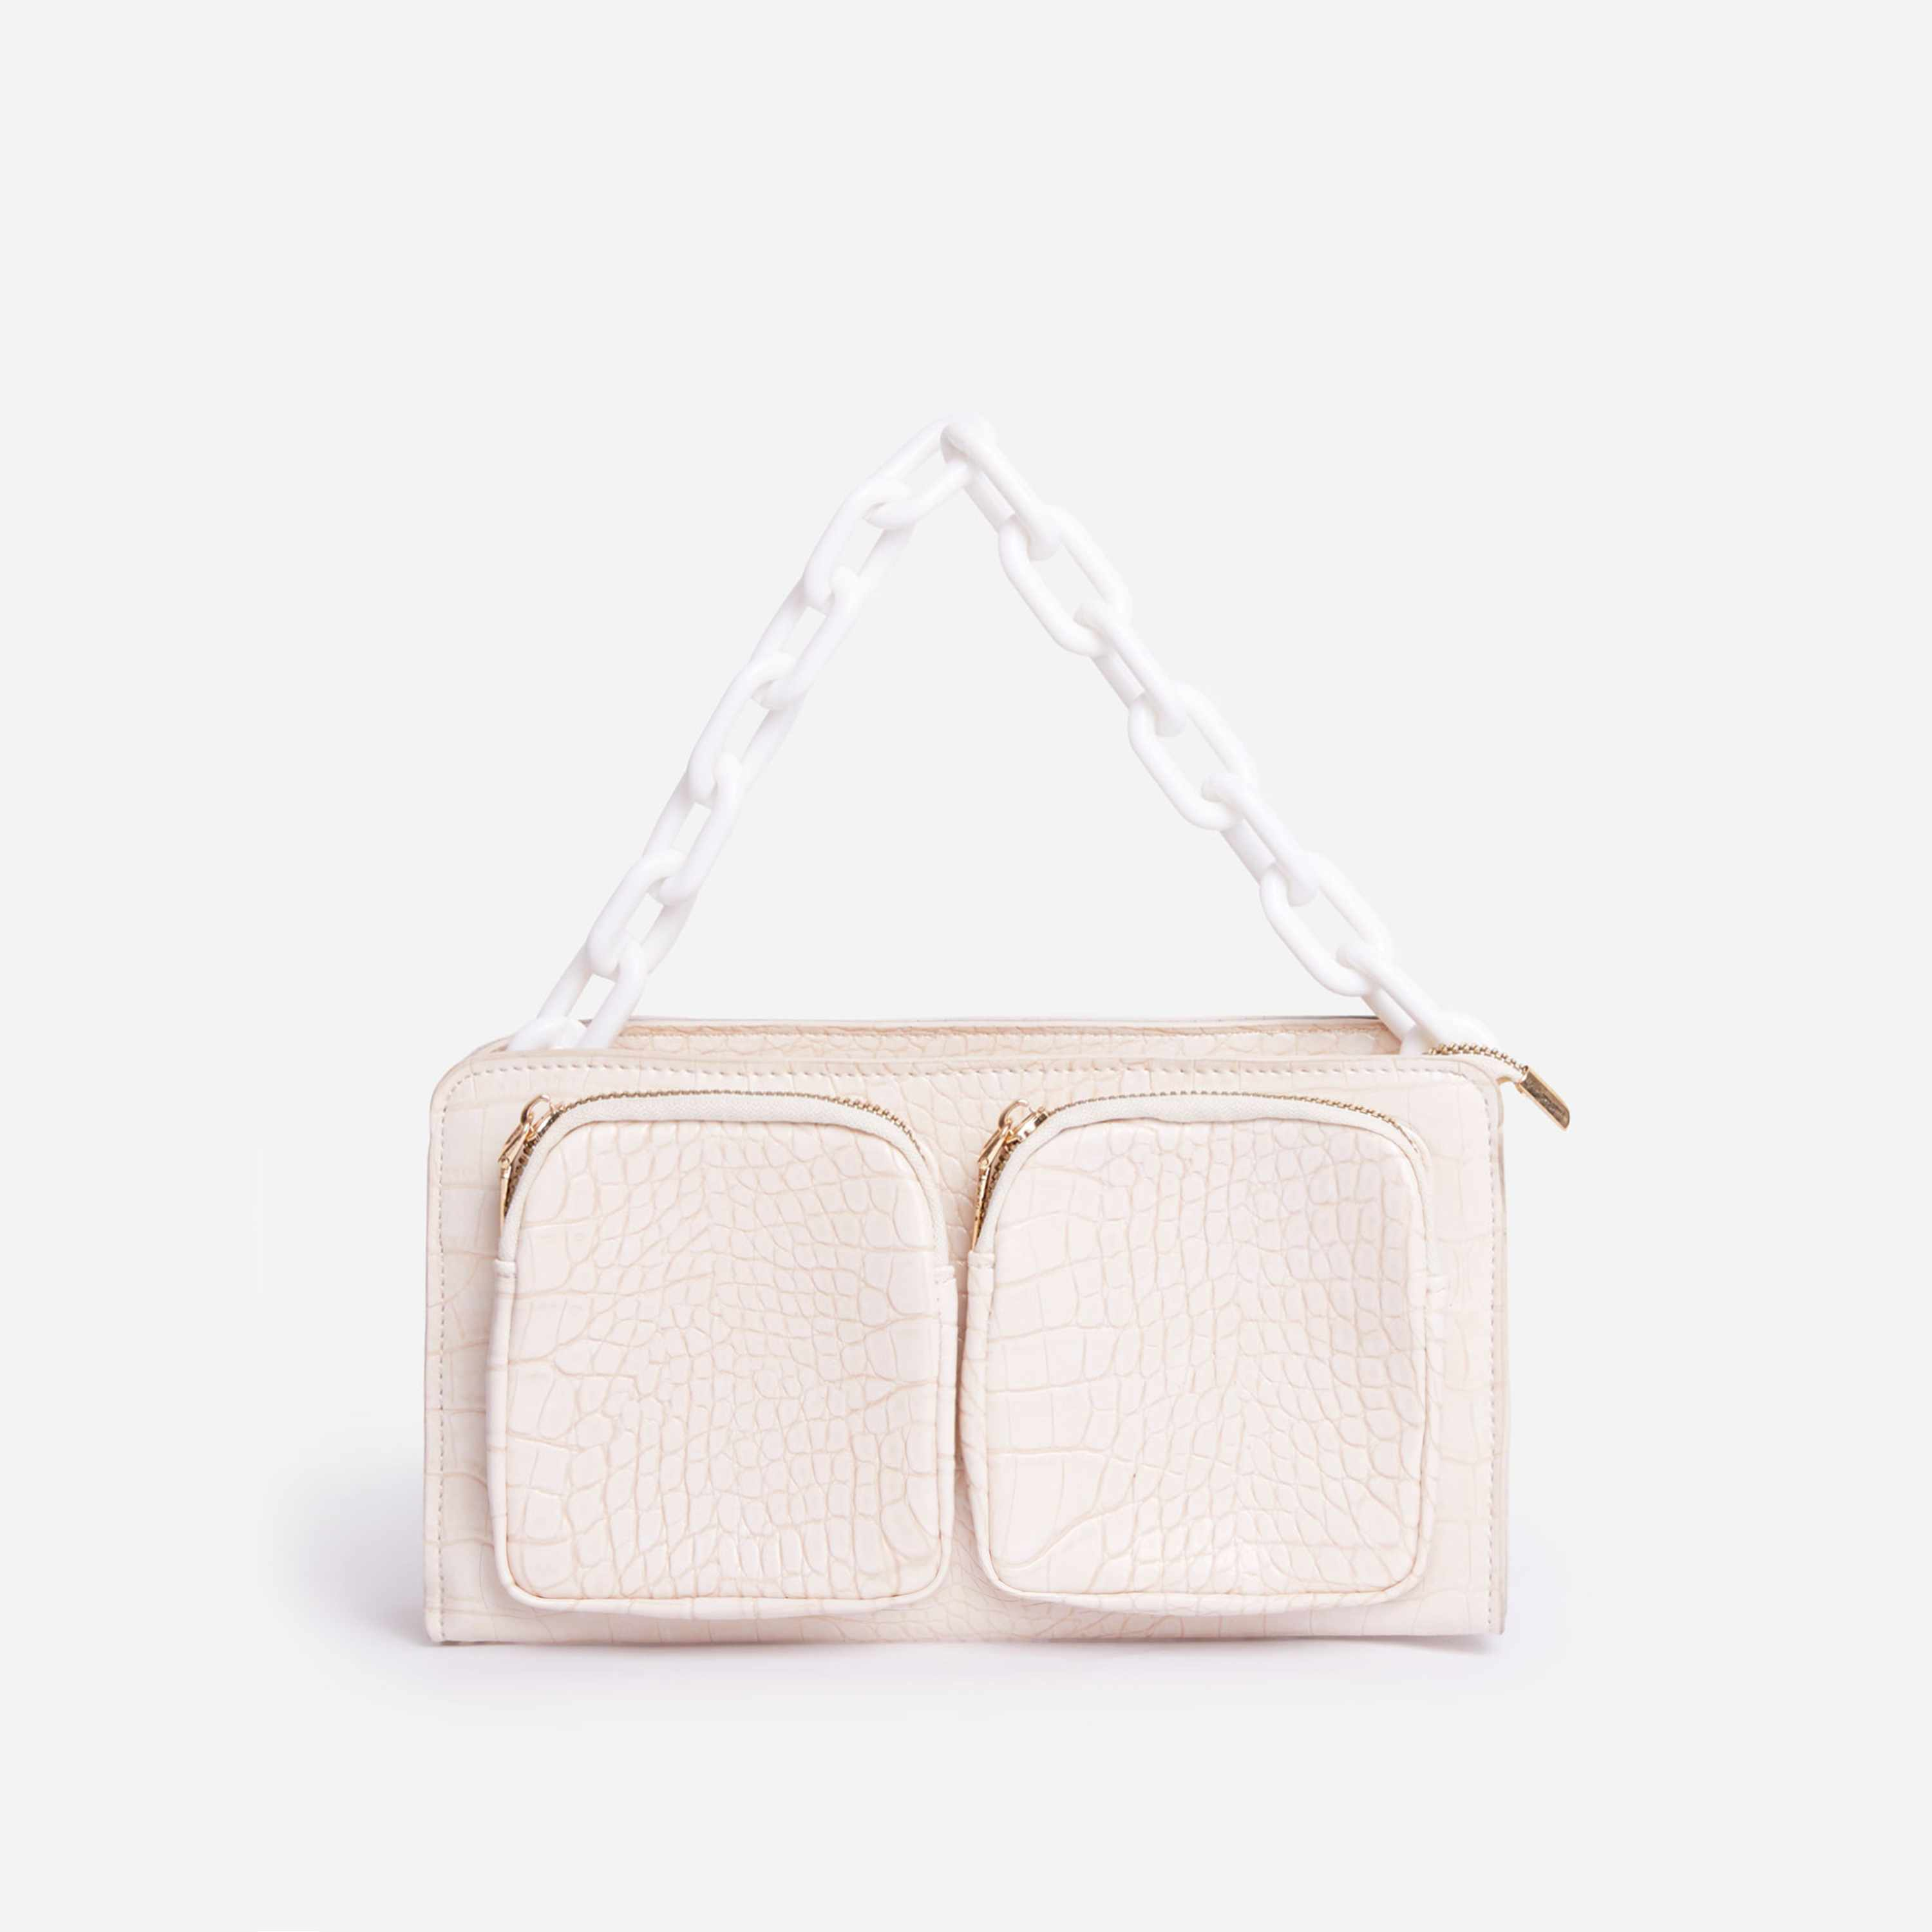 Crown Chain Detail Multi Pocket Bag In White Faux Leather